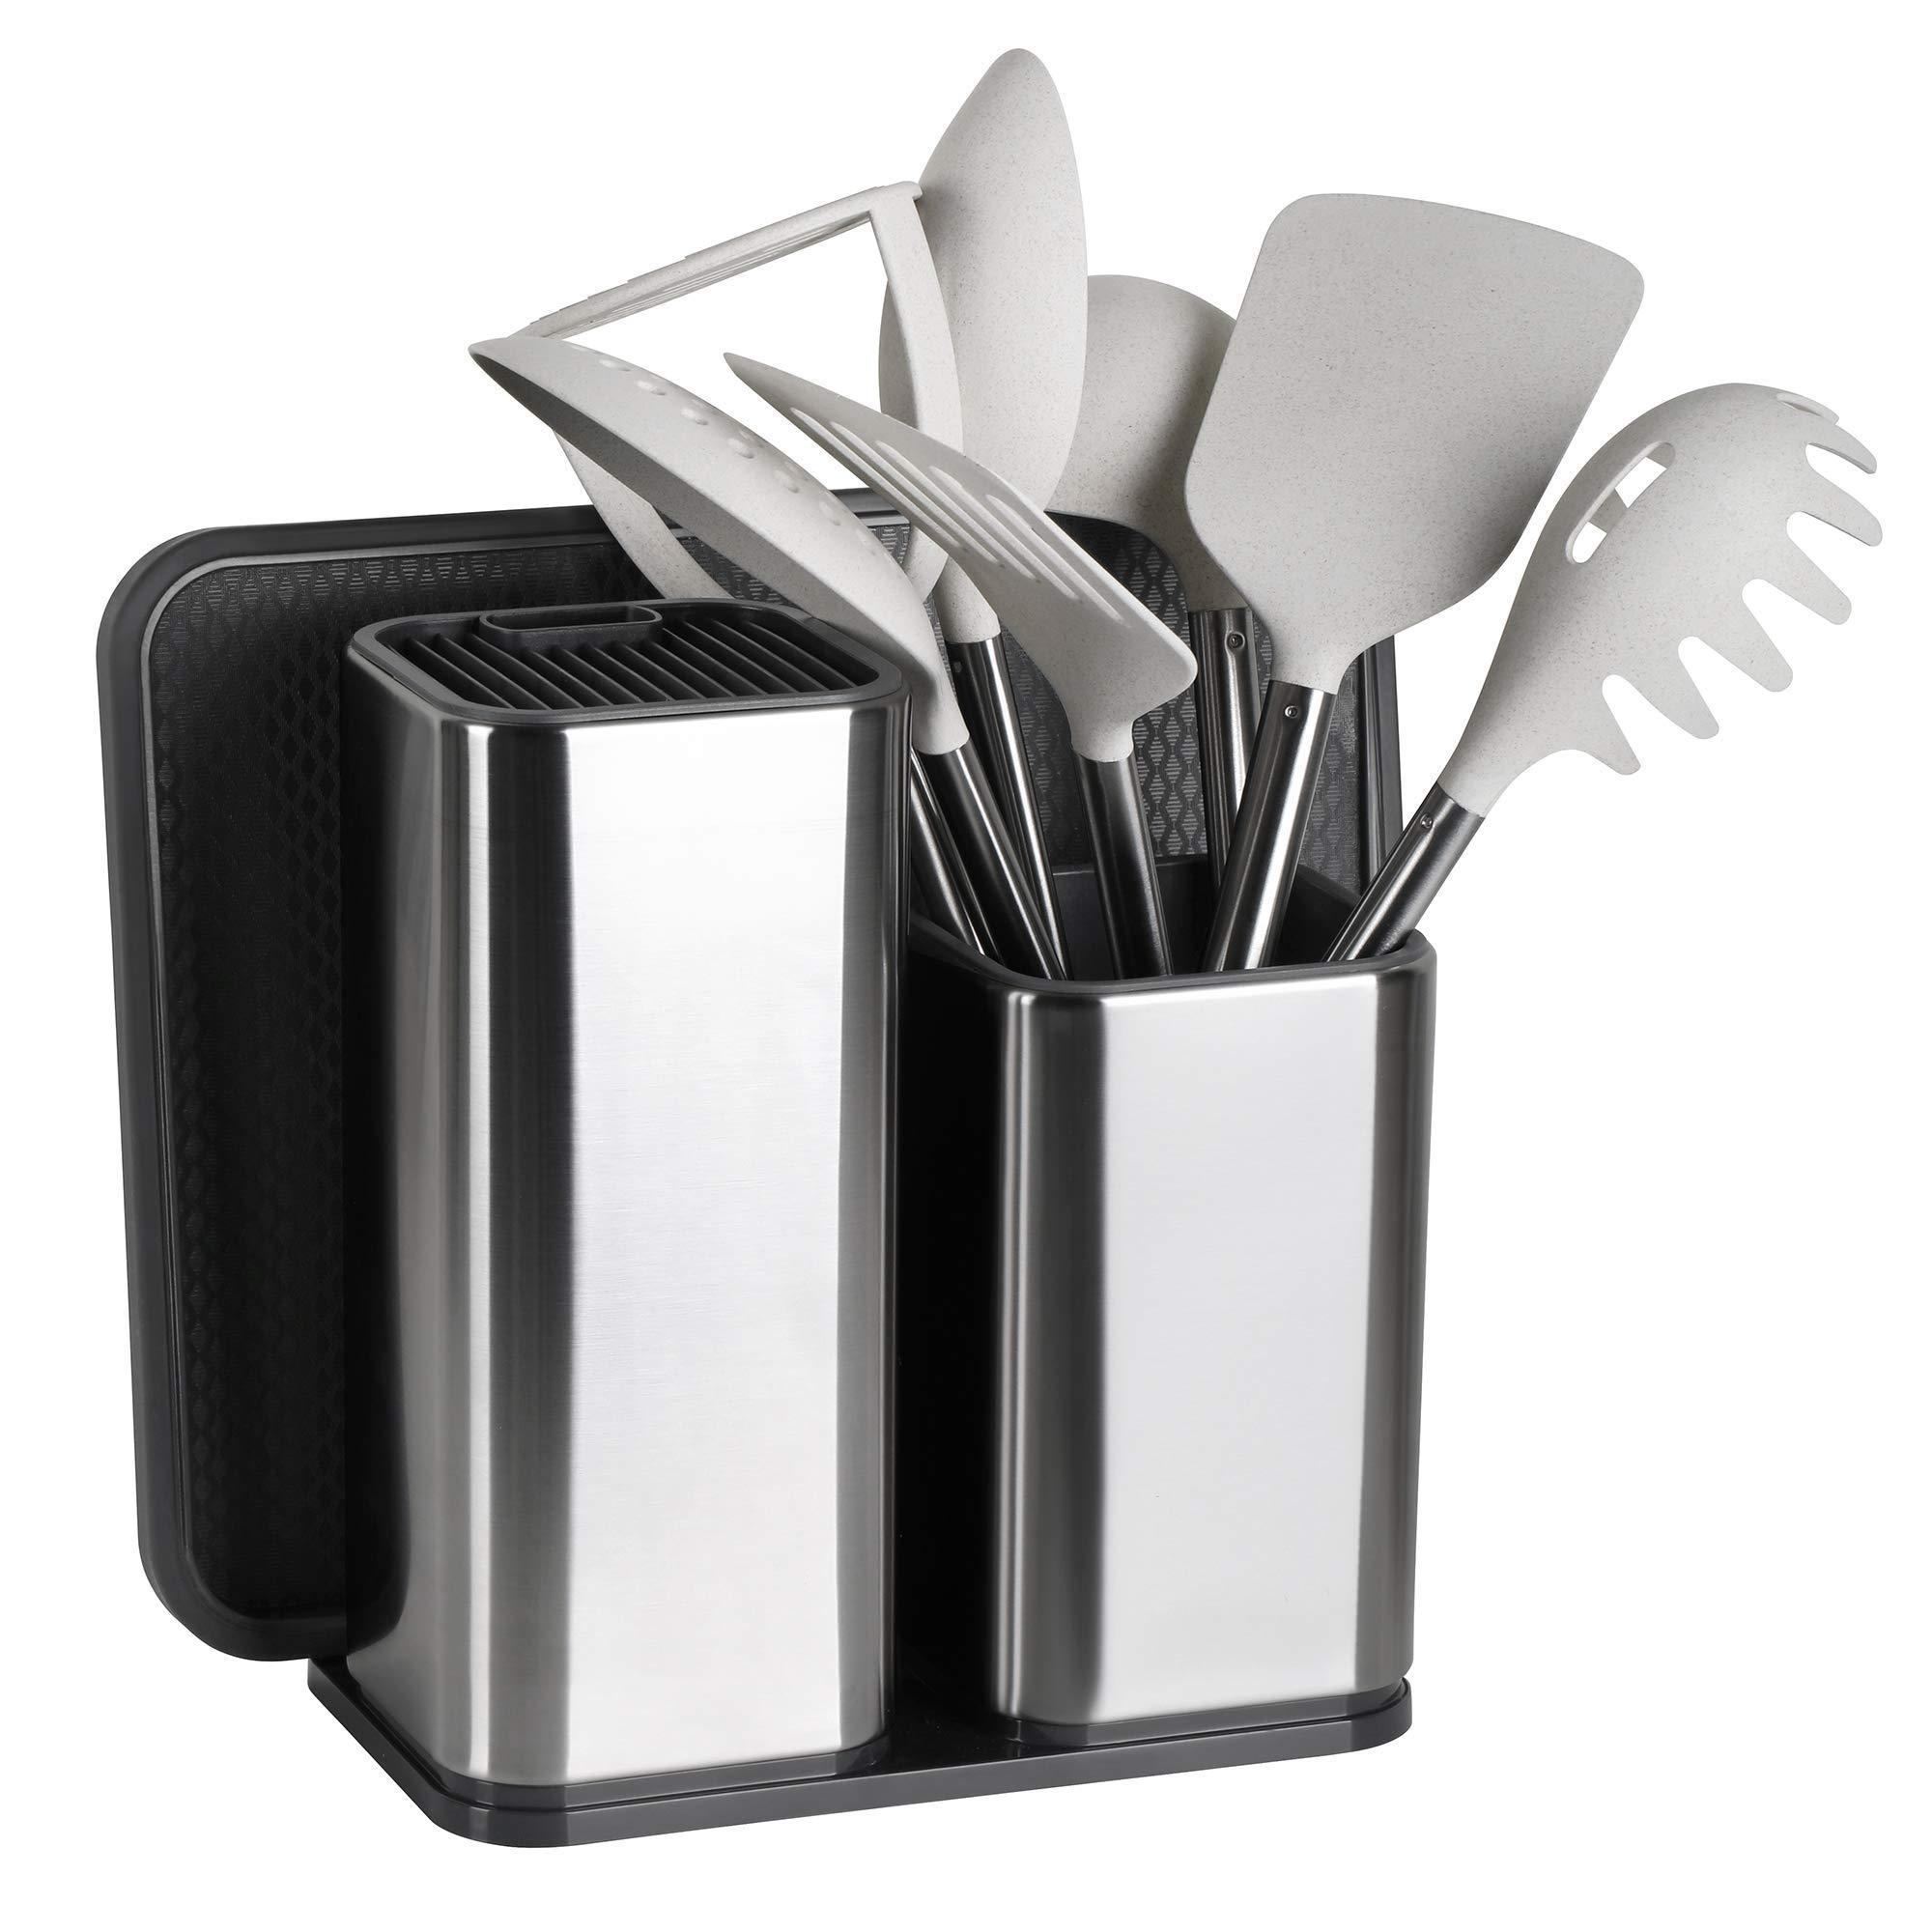 Discover elfrhino utensils holder stainless steel kitchen tools knives holder knives block utensils container utensils crock flatware caddy cookware cutlery utensils holder multipurpose kitchen storage crock